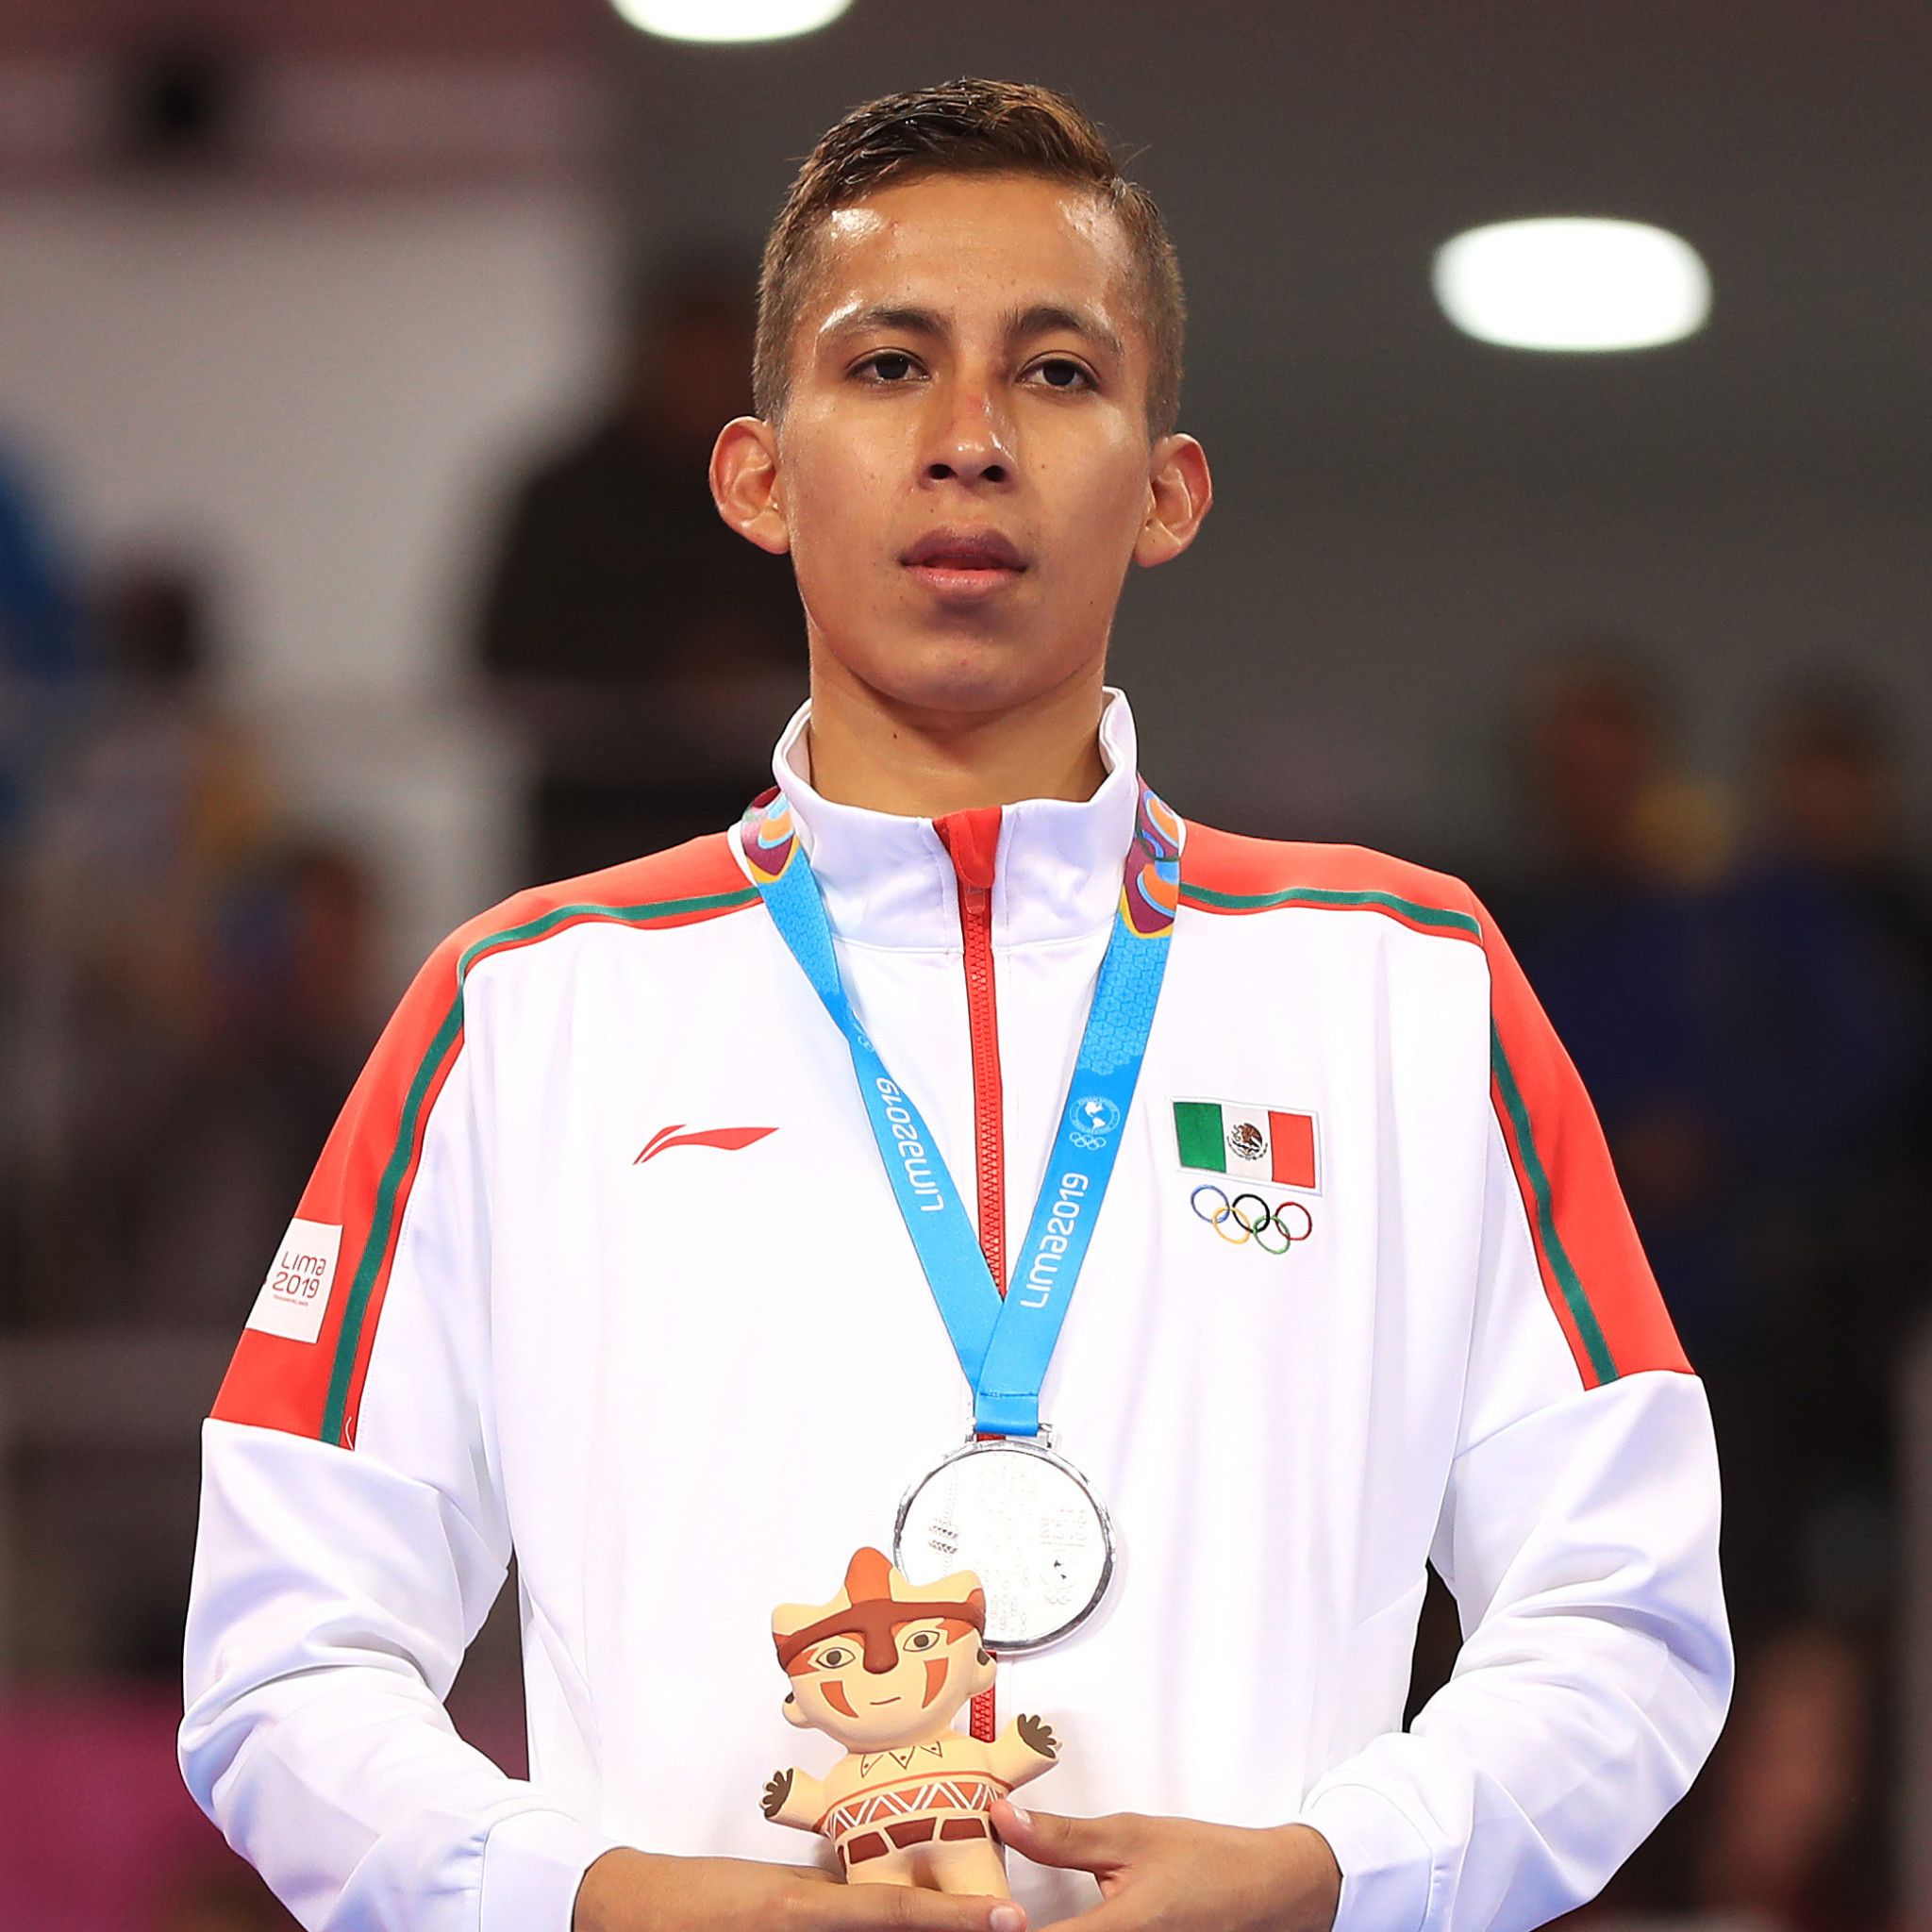 Brandon Plaza Hernandéz – youth and talent on his side